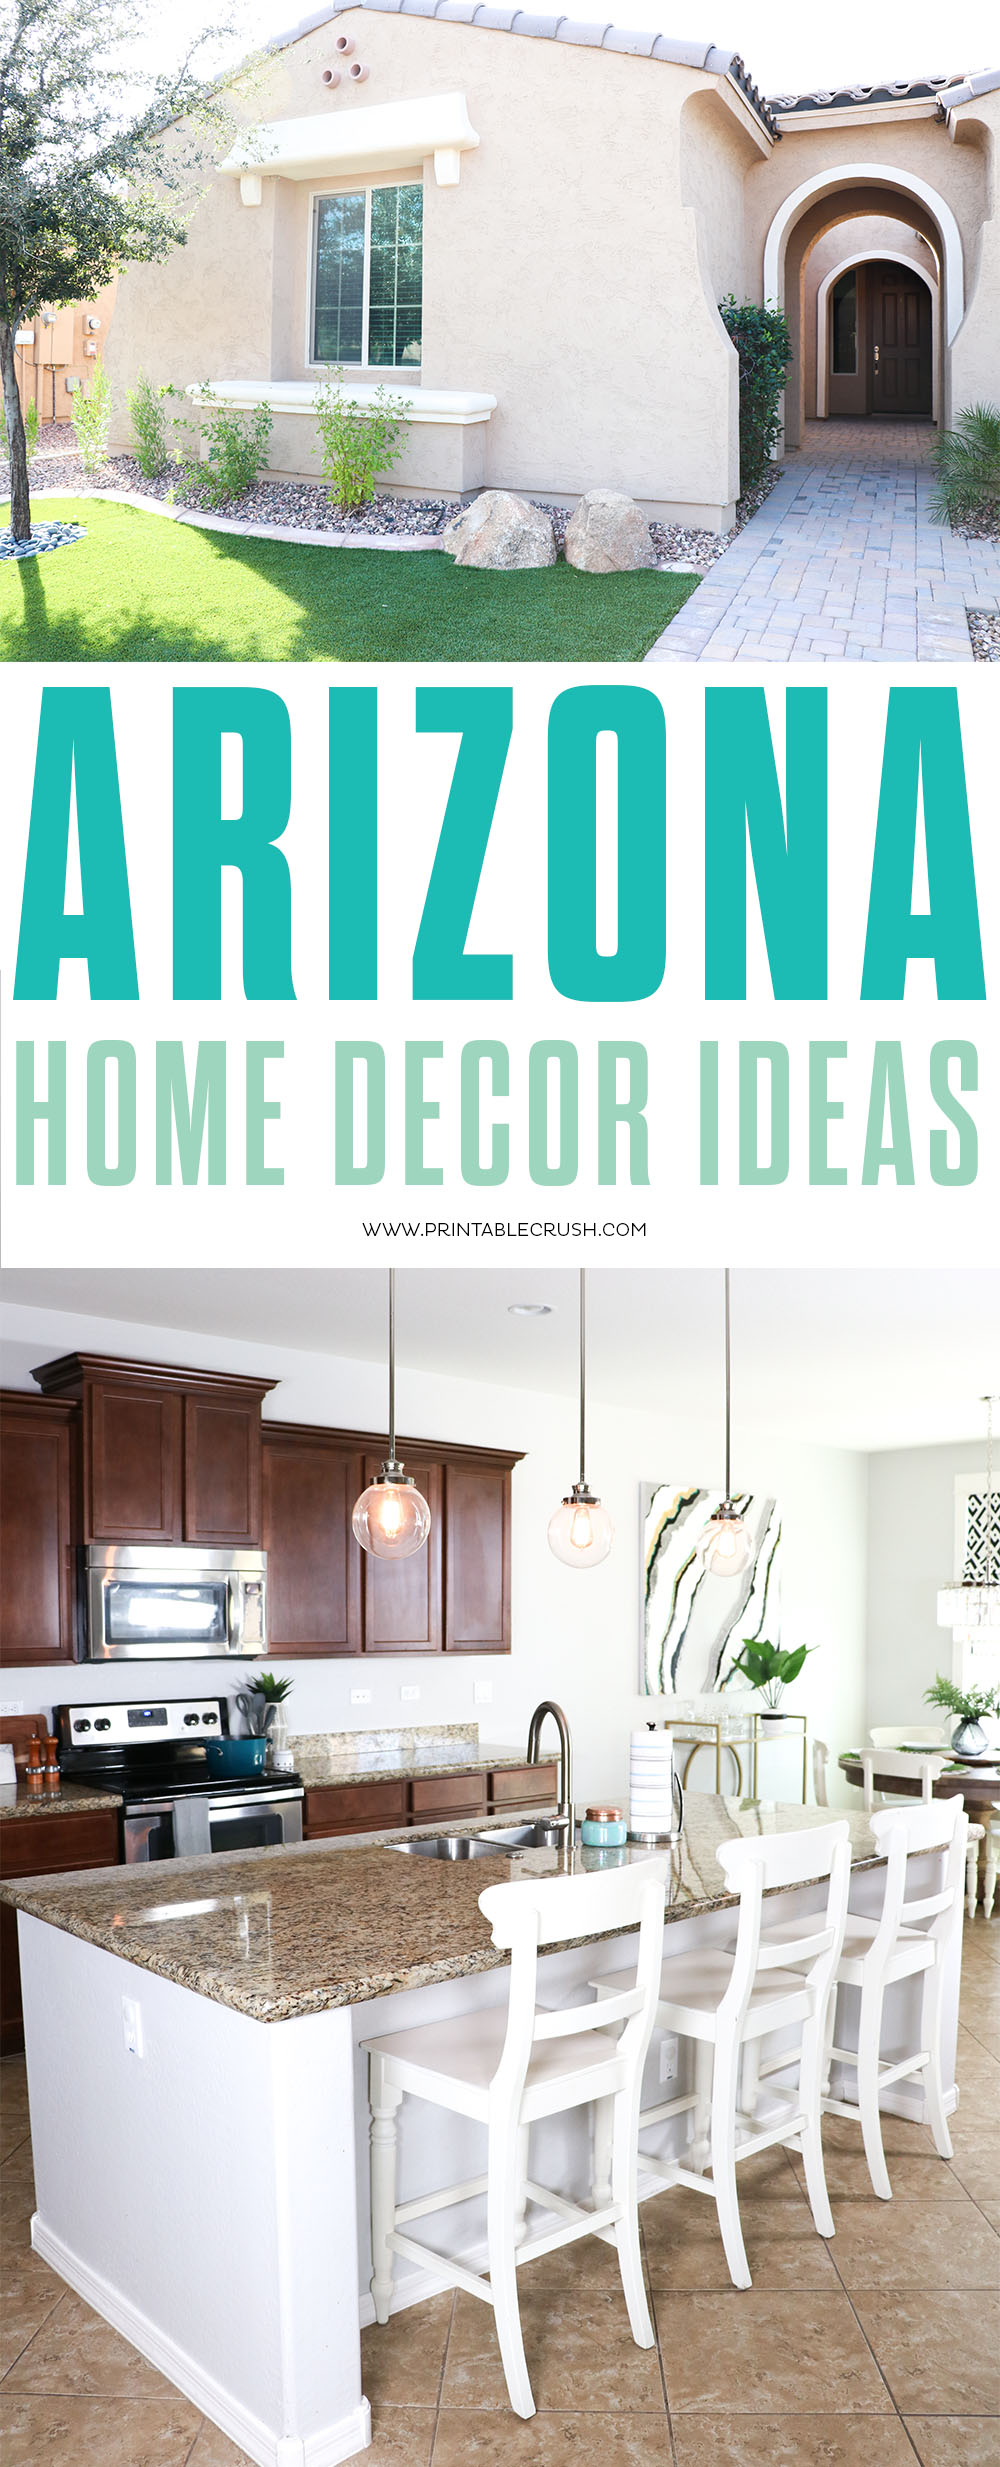 Not sure how to decorate a home in Arizona? Check out these Arizona Home Decor Ideas!